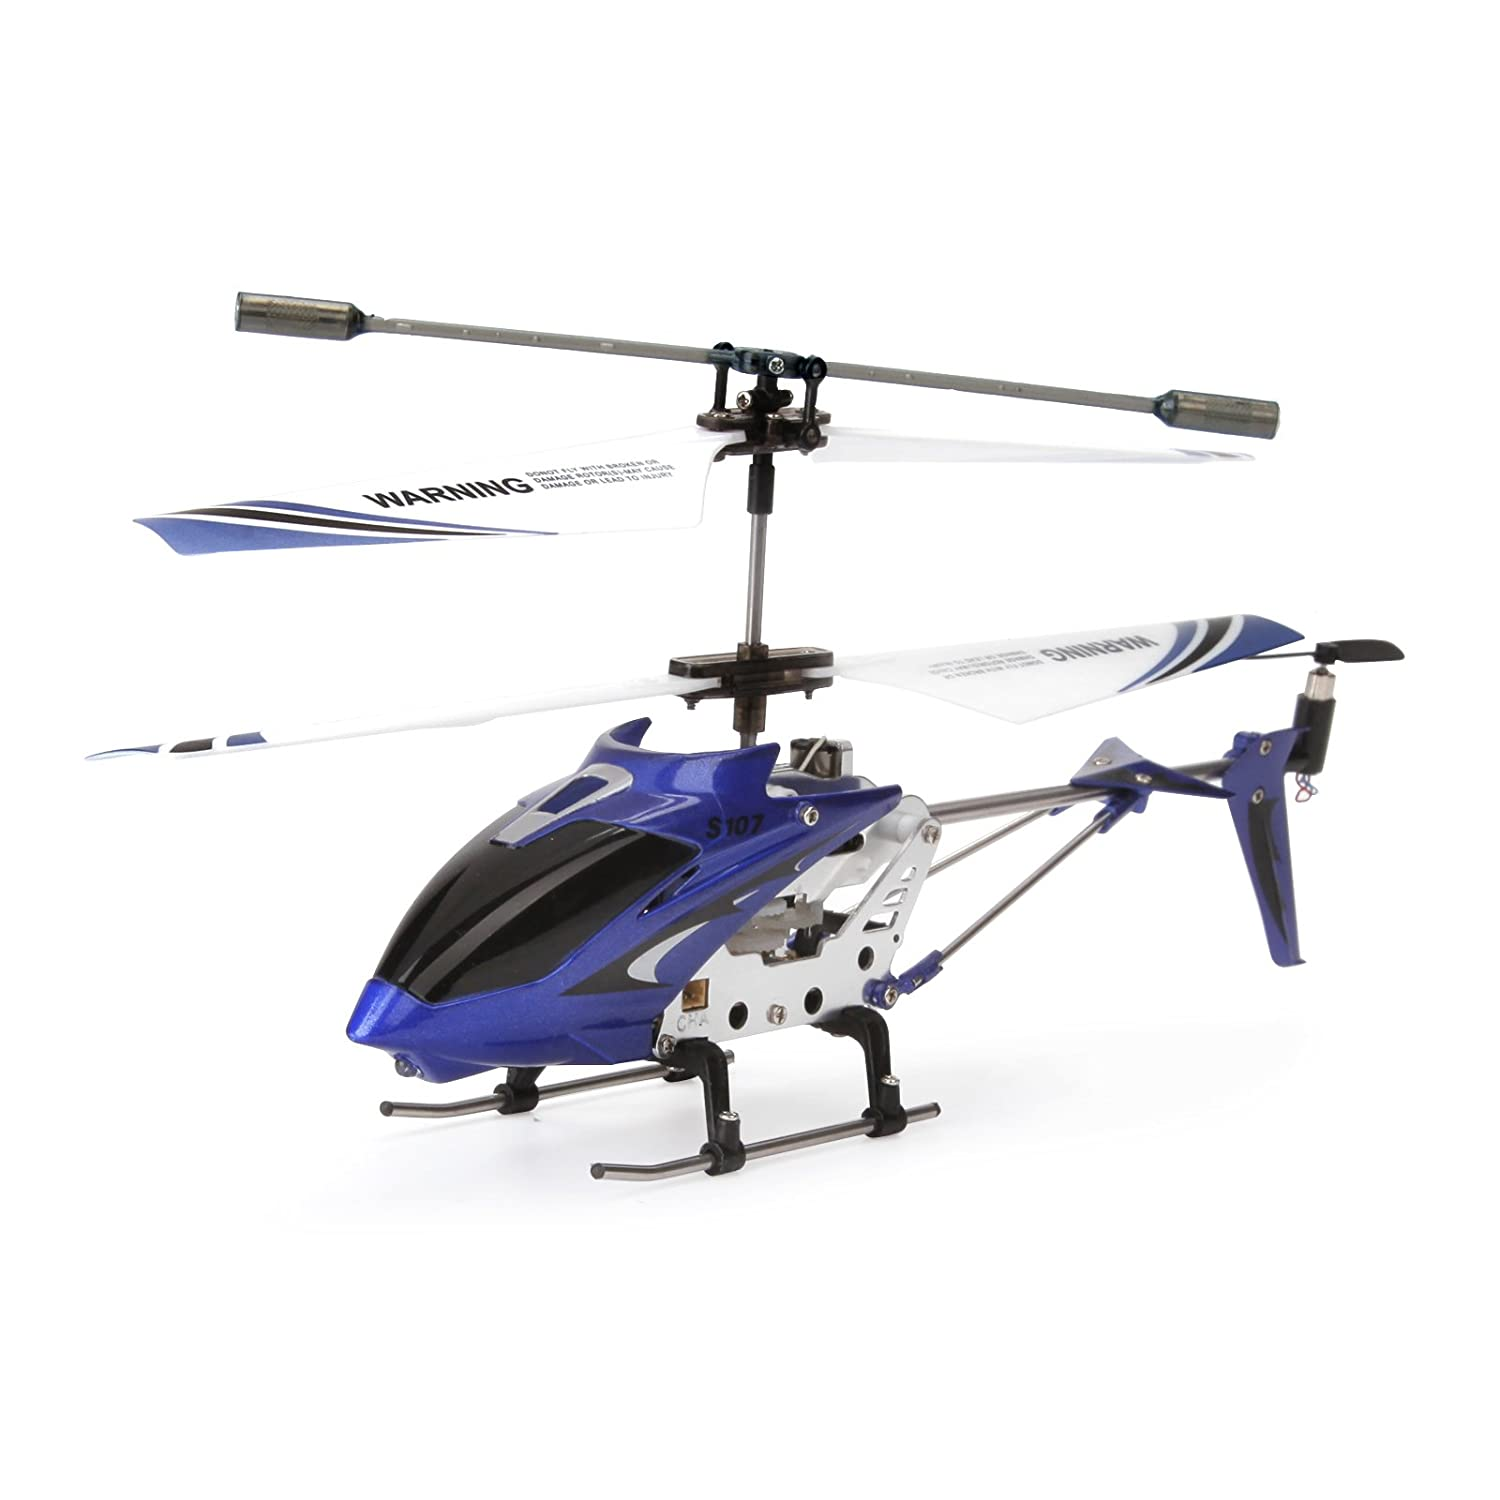 Top 10 Best RC Helicopters Reviews in 2021 5